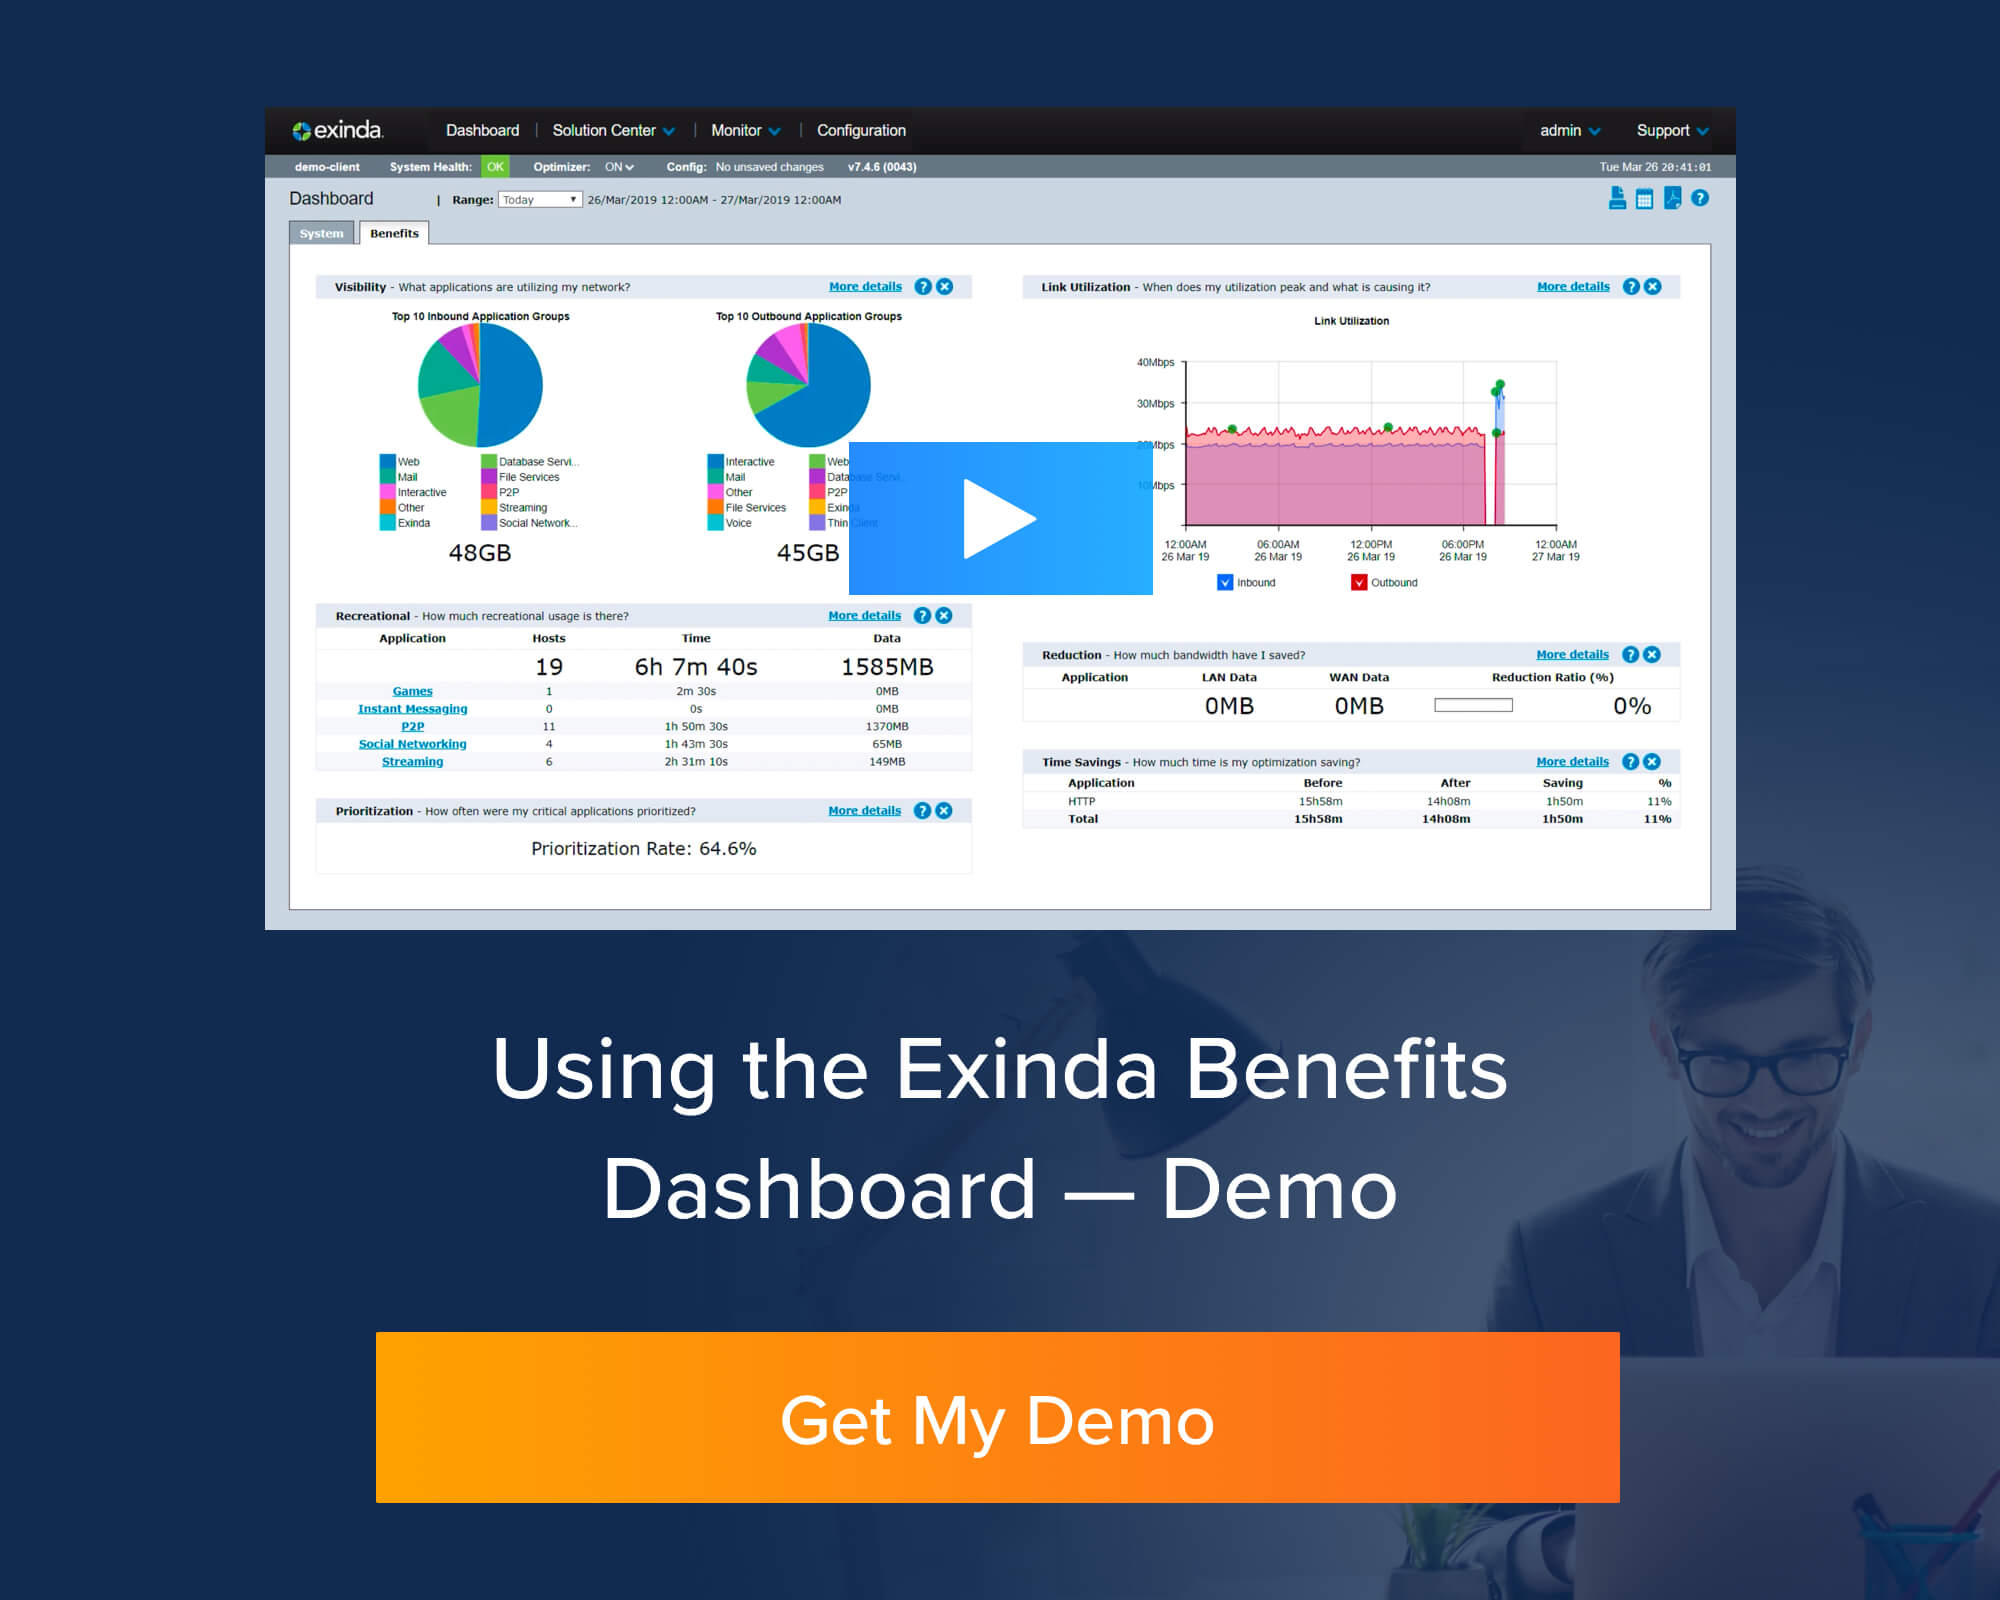 exinda dashboard walkthrough